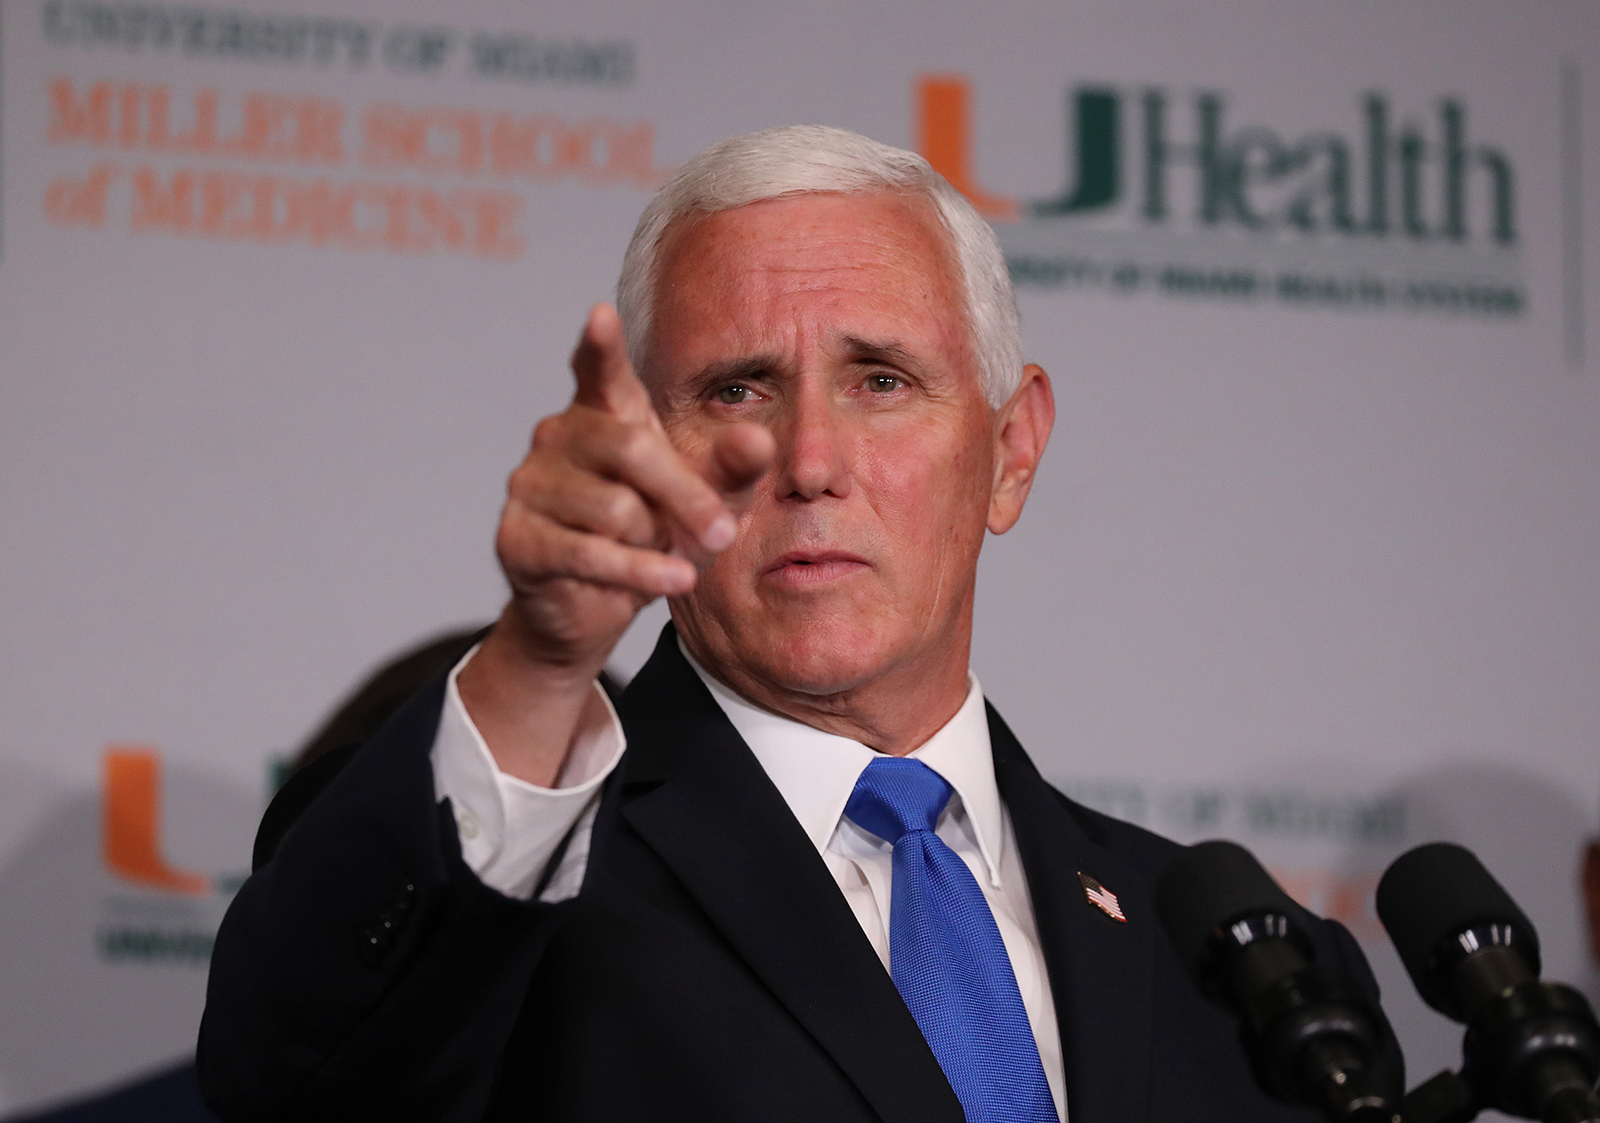 Vice President Mike Pence speaks during a press conference at the the University of Miami Miller School of Medicine on July 27 in Miami.